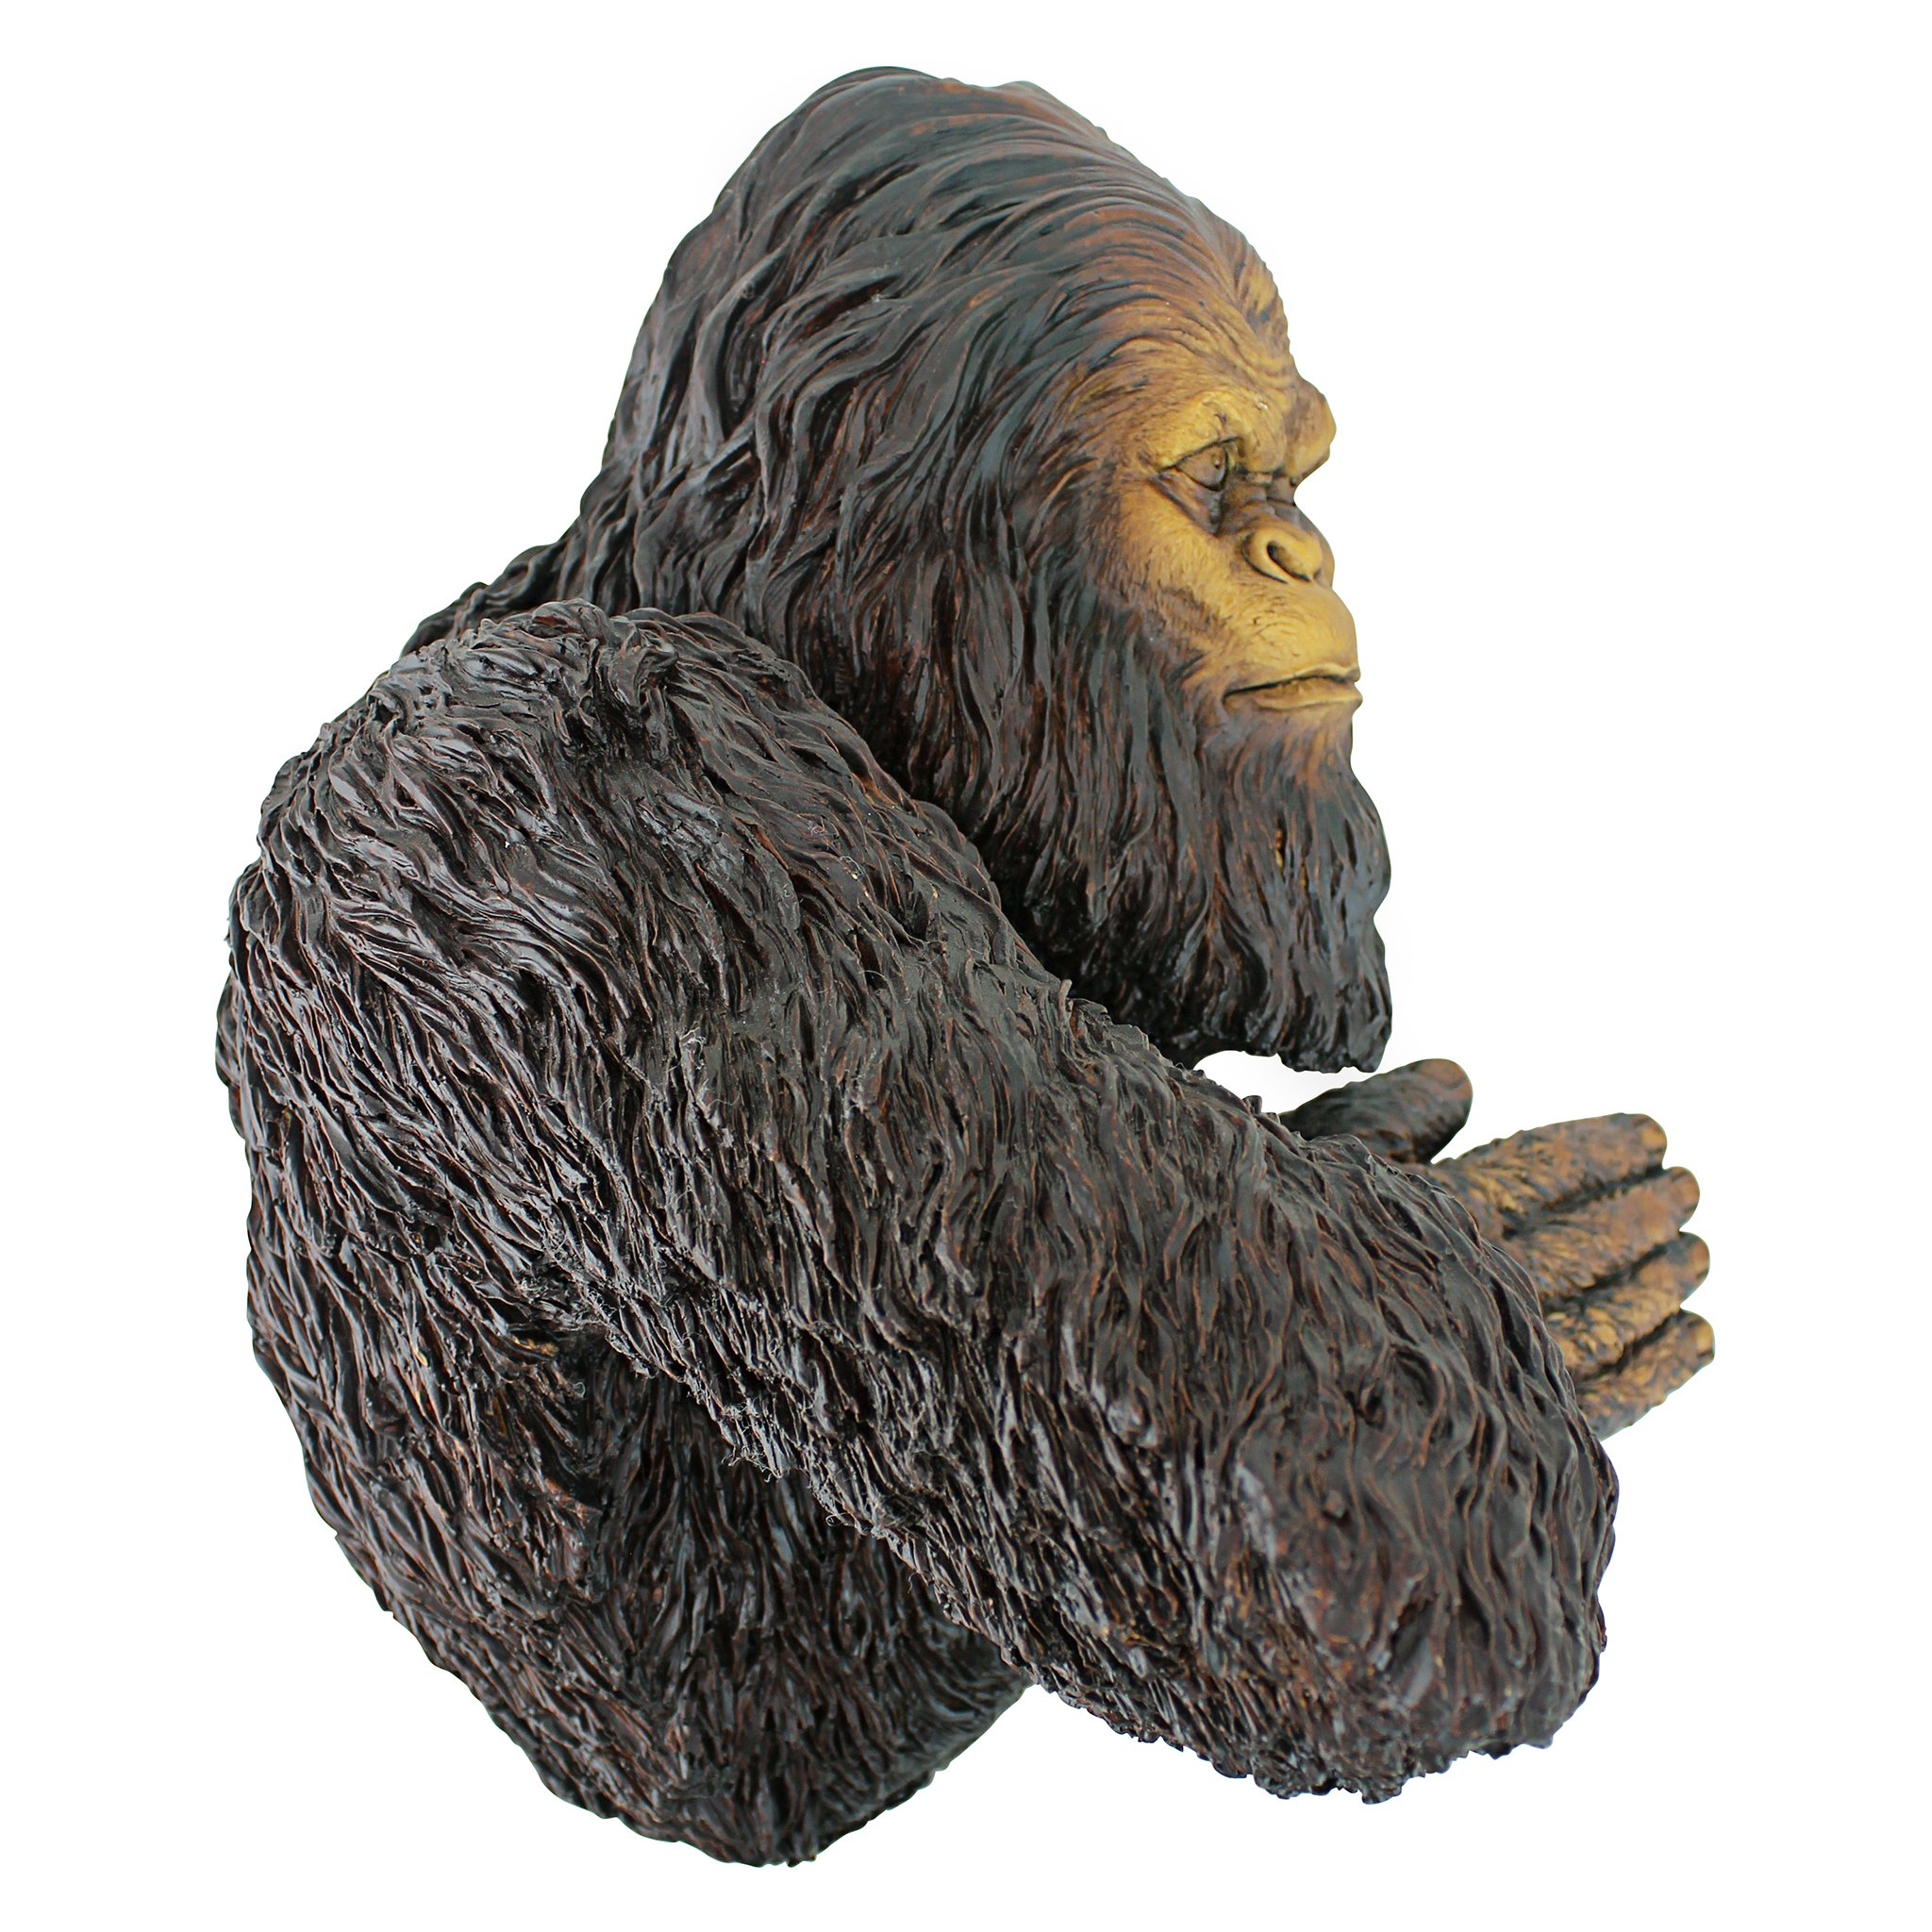 Design Toscano Bigfoot the Bashful Yeti Garden Tree Sculpture, 15 Inch, Polyresin, Full Color by Design Toscano (Image #2)